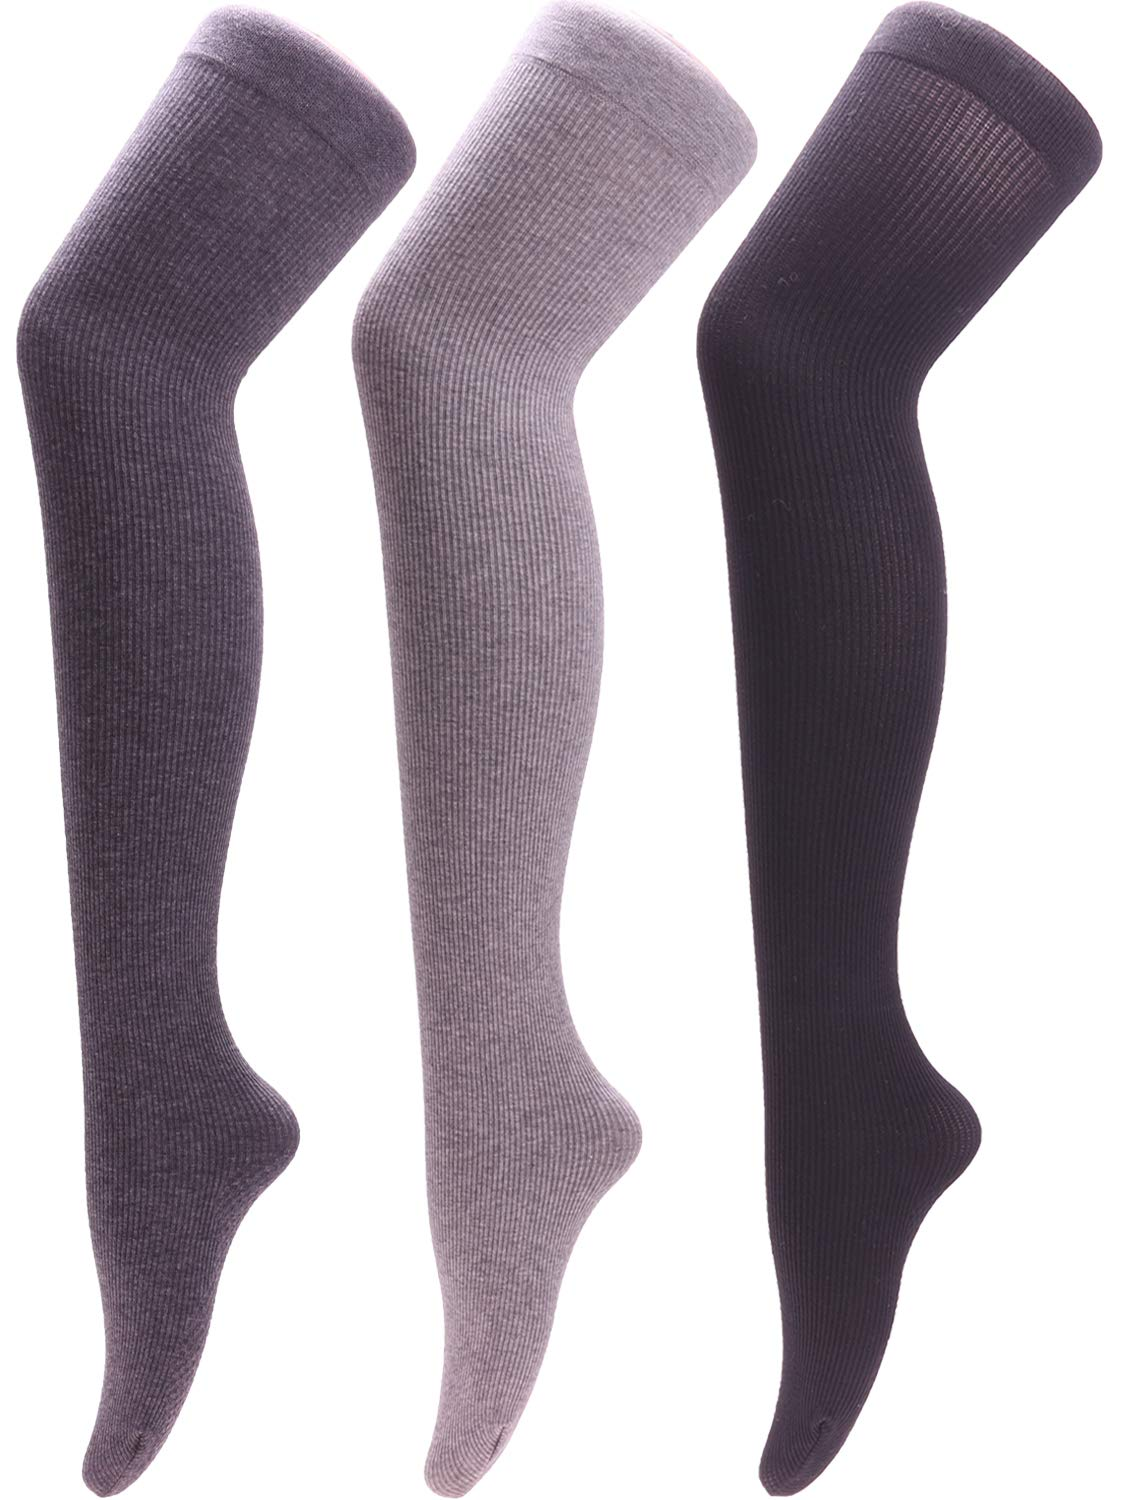 3 Pairs Women Thigh High Cotton Socks Solid Color, S61 Size 5-11